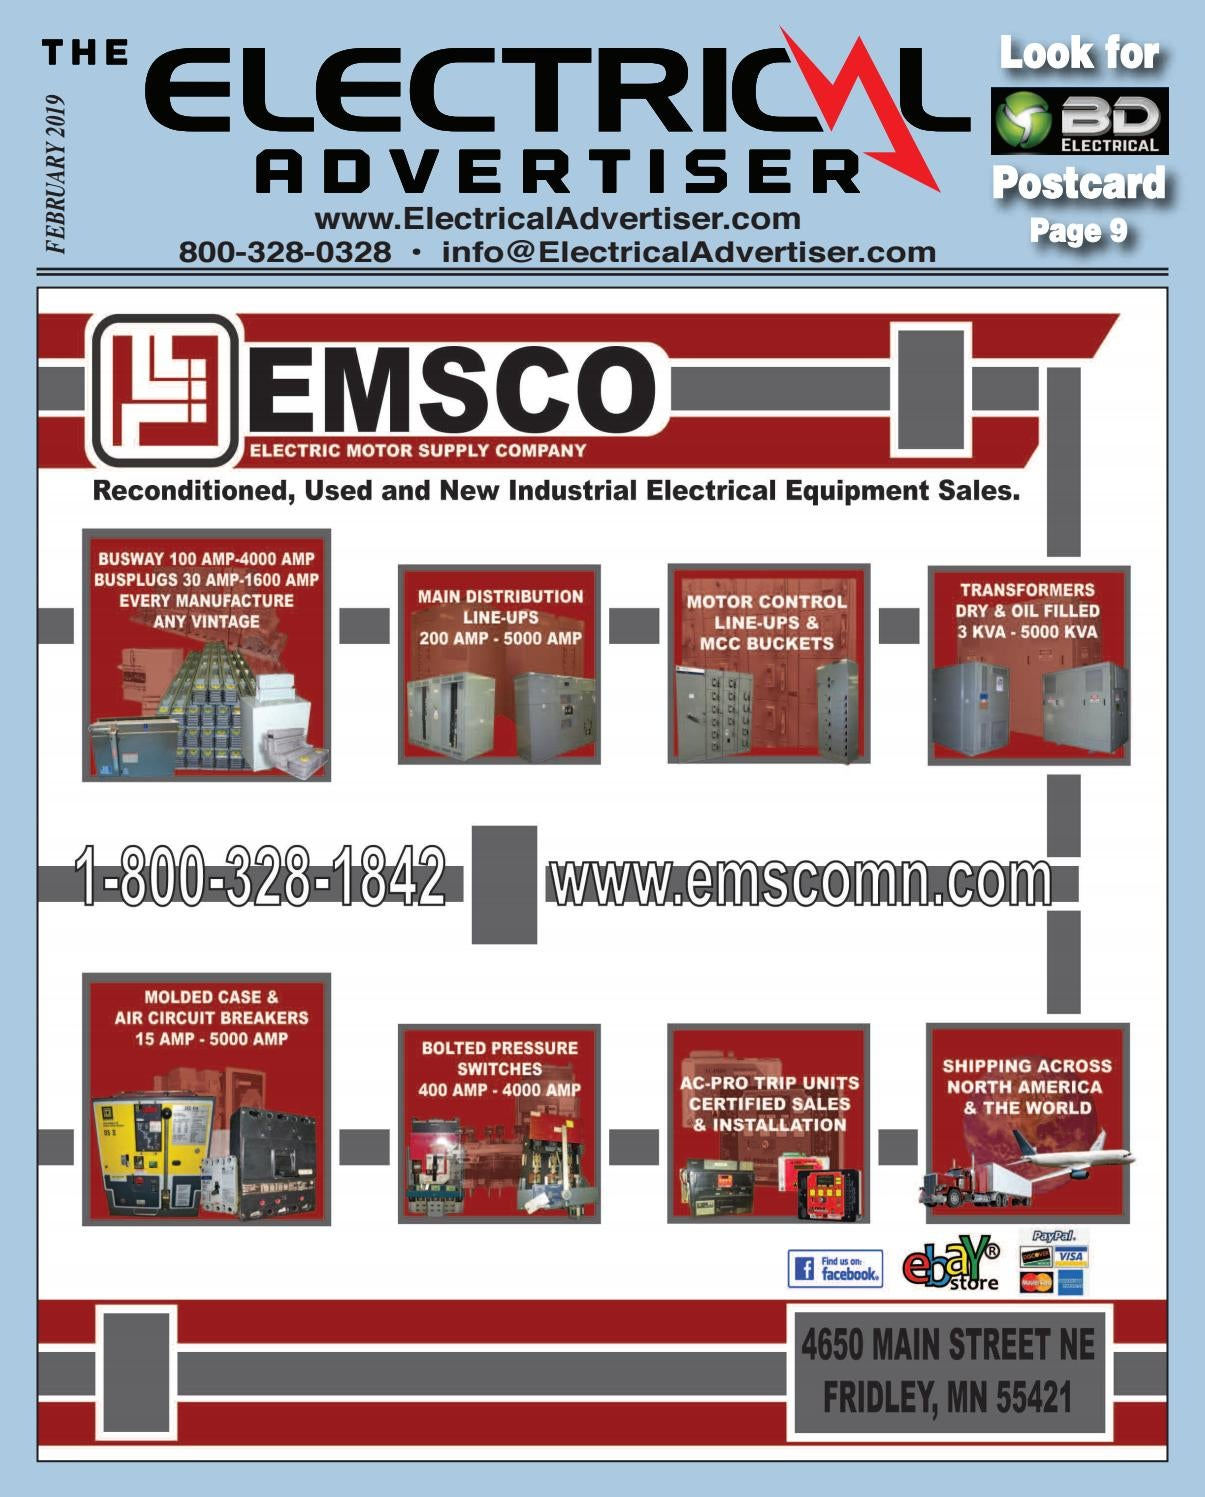 The Electrical Advertiser February 2019 by Electrical Advertiser - issuu